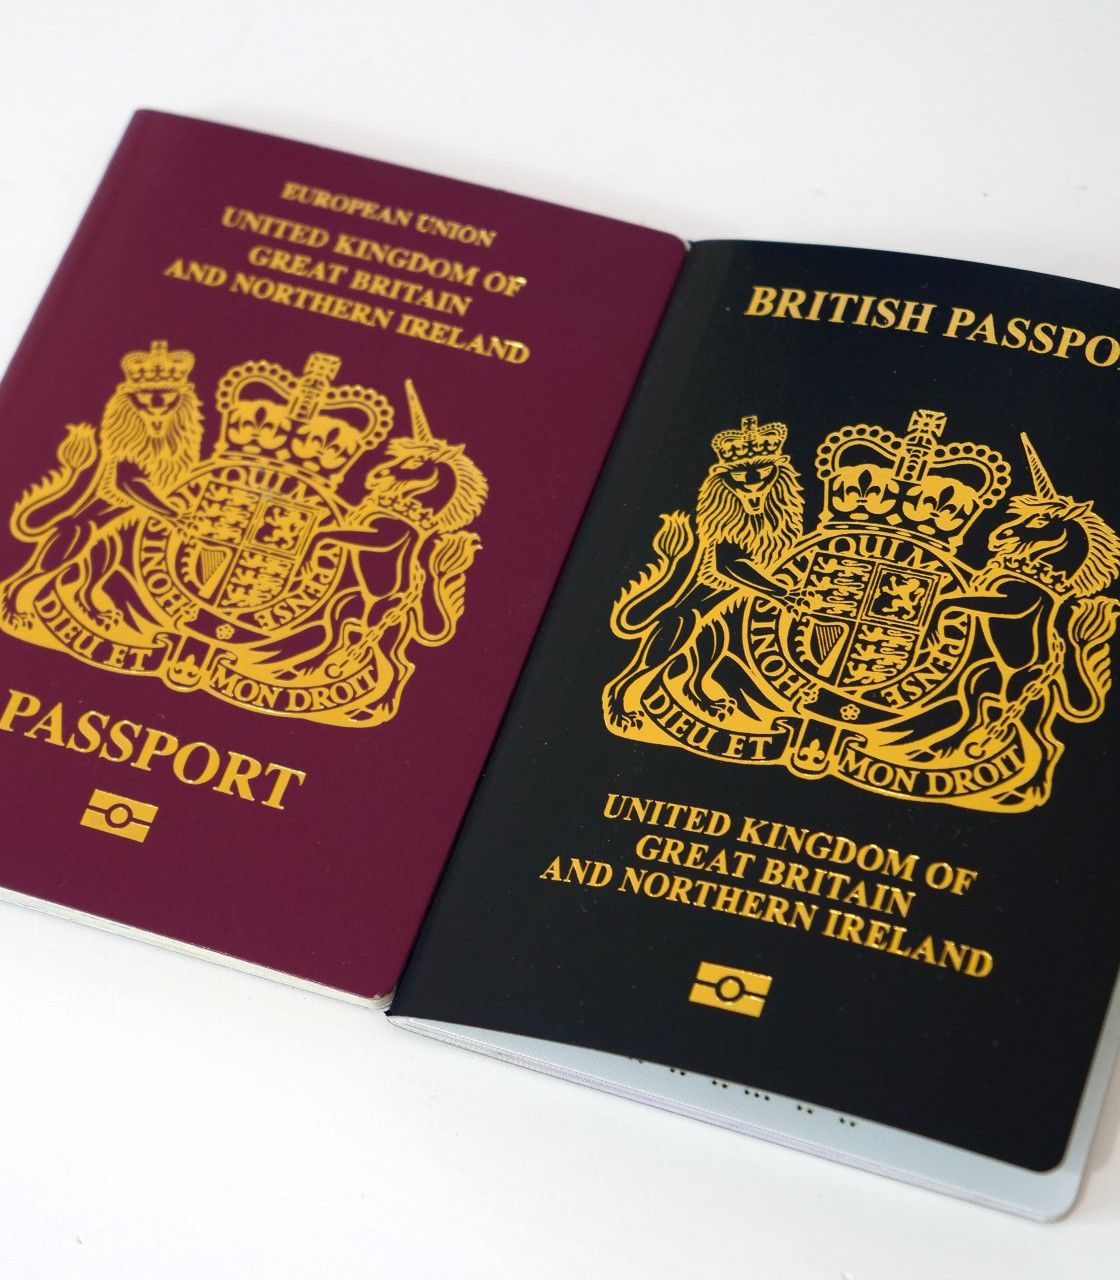 Developing a Target Operating Model for a major passport issuer